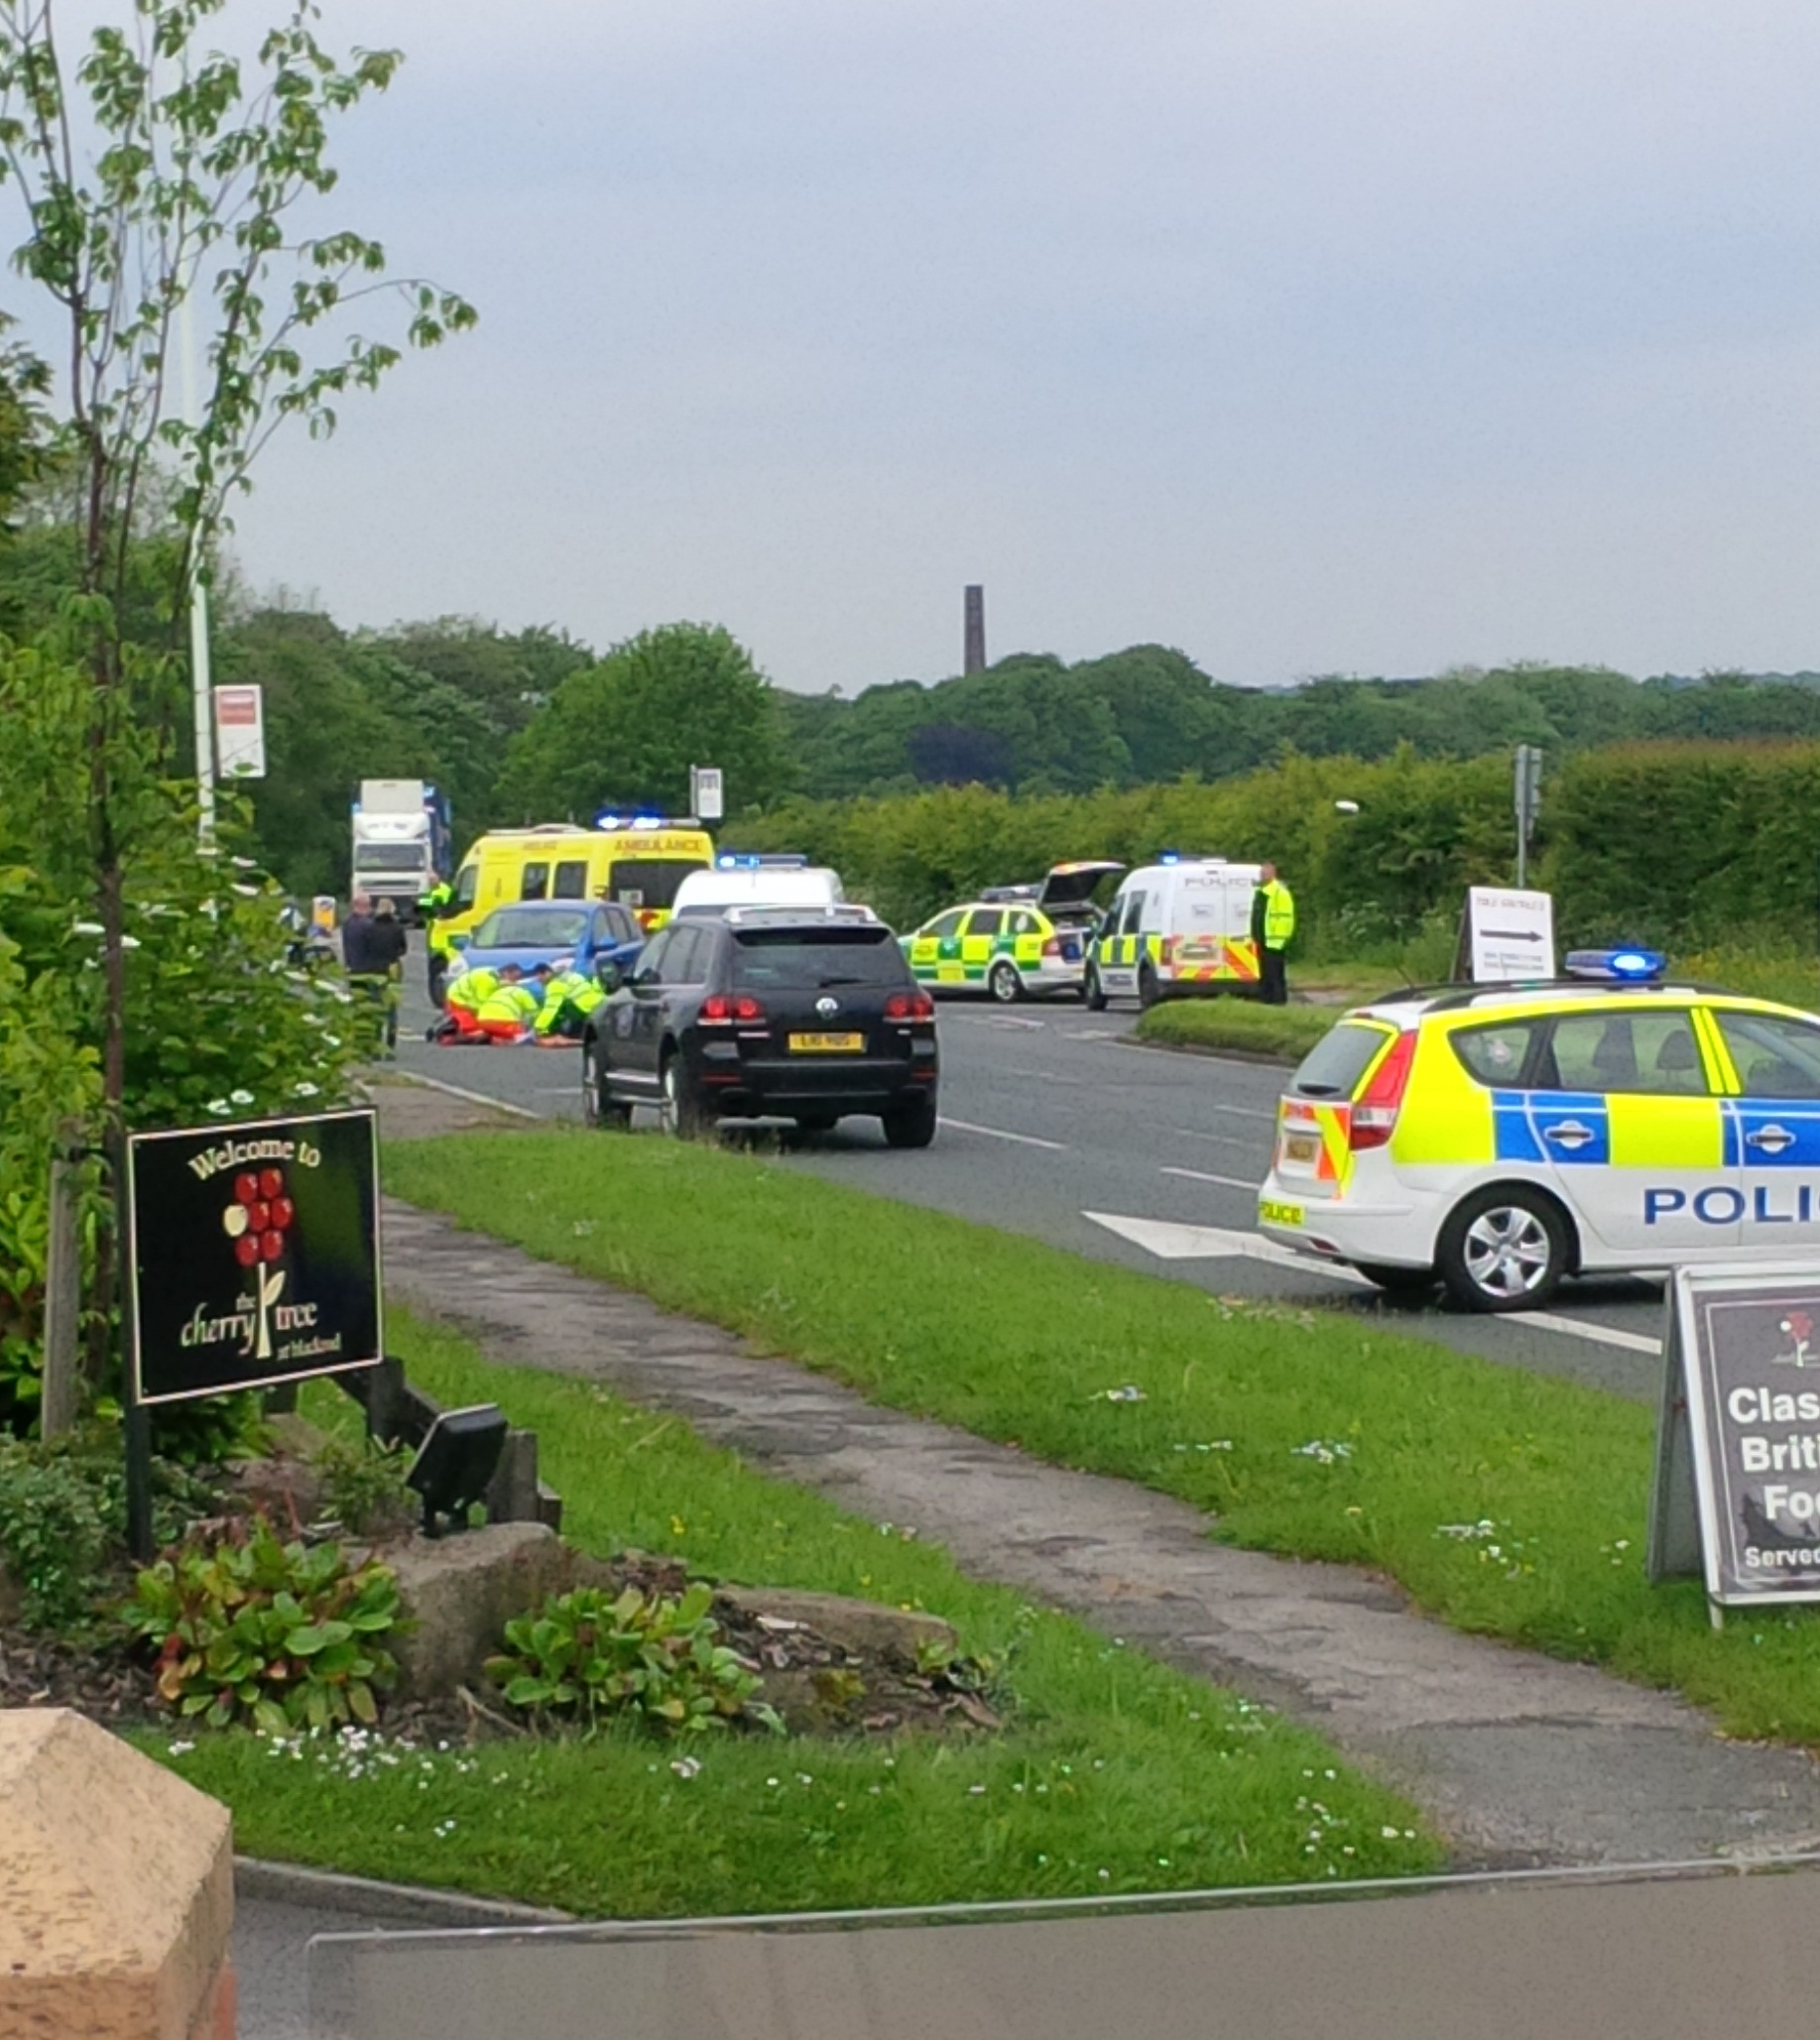 UPDATED: 87-year-old motorcyclist airlifted to hospital after crash in Blackrod